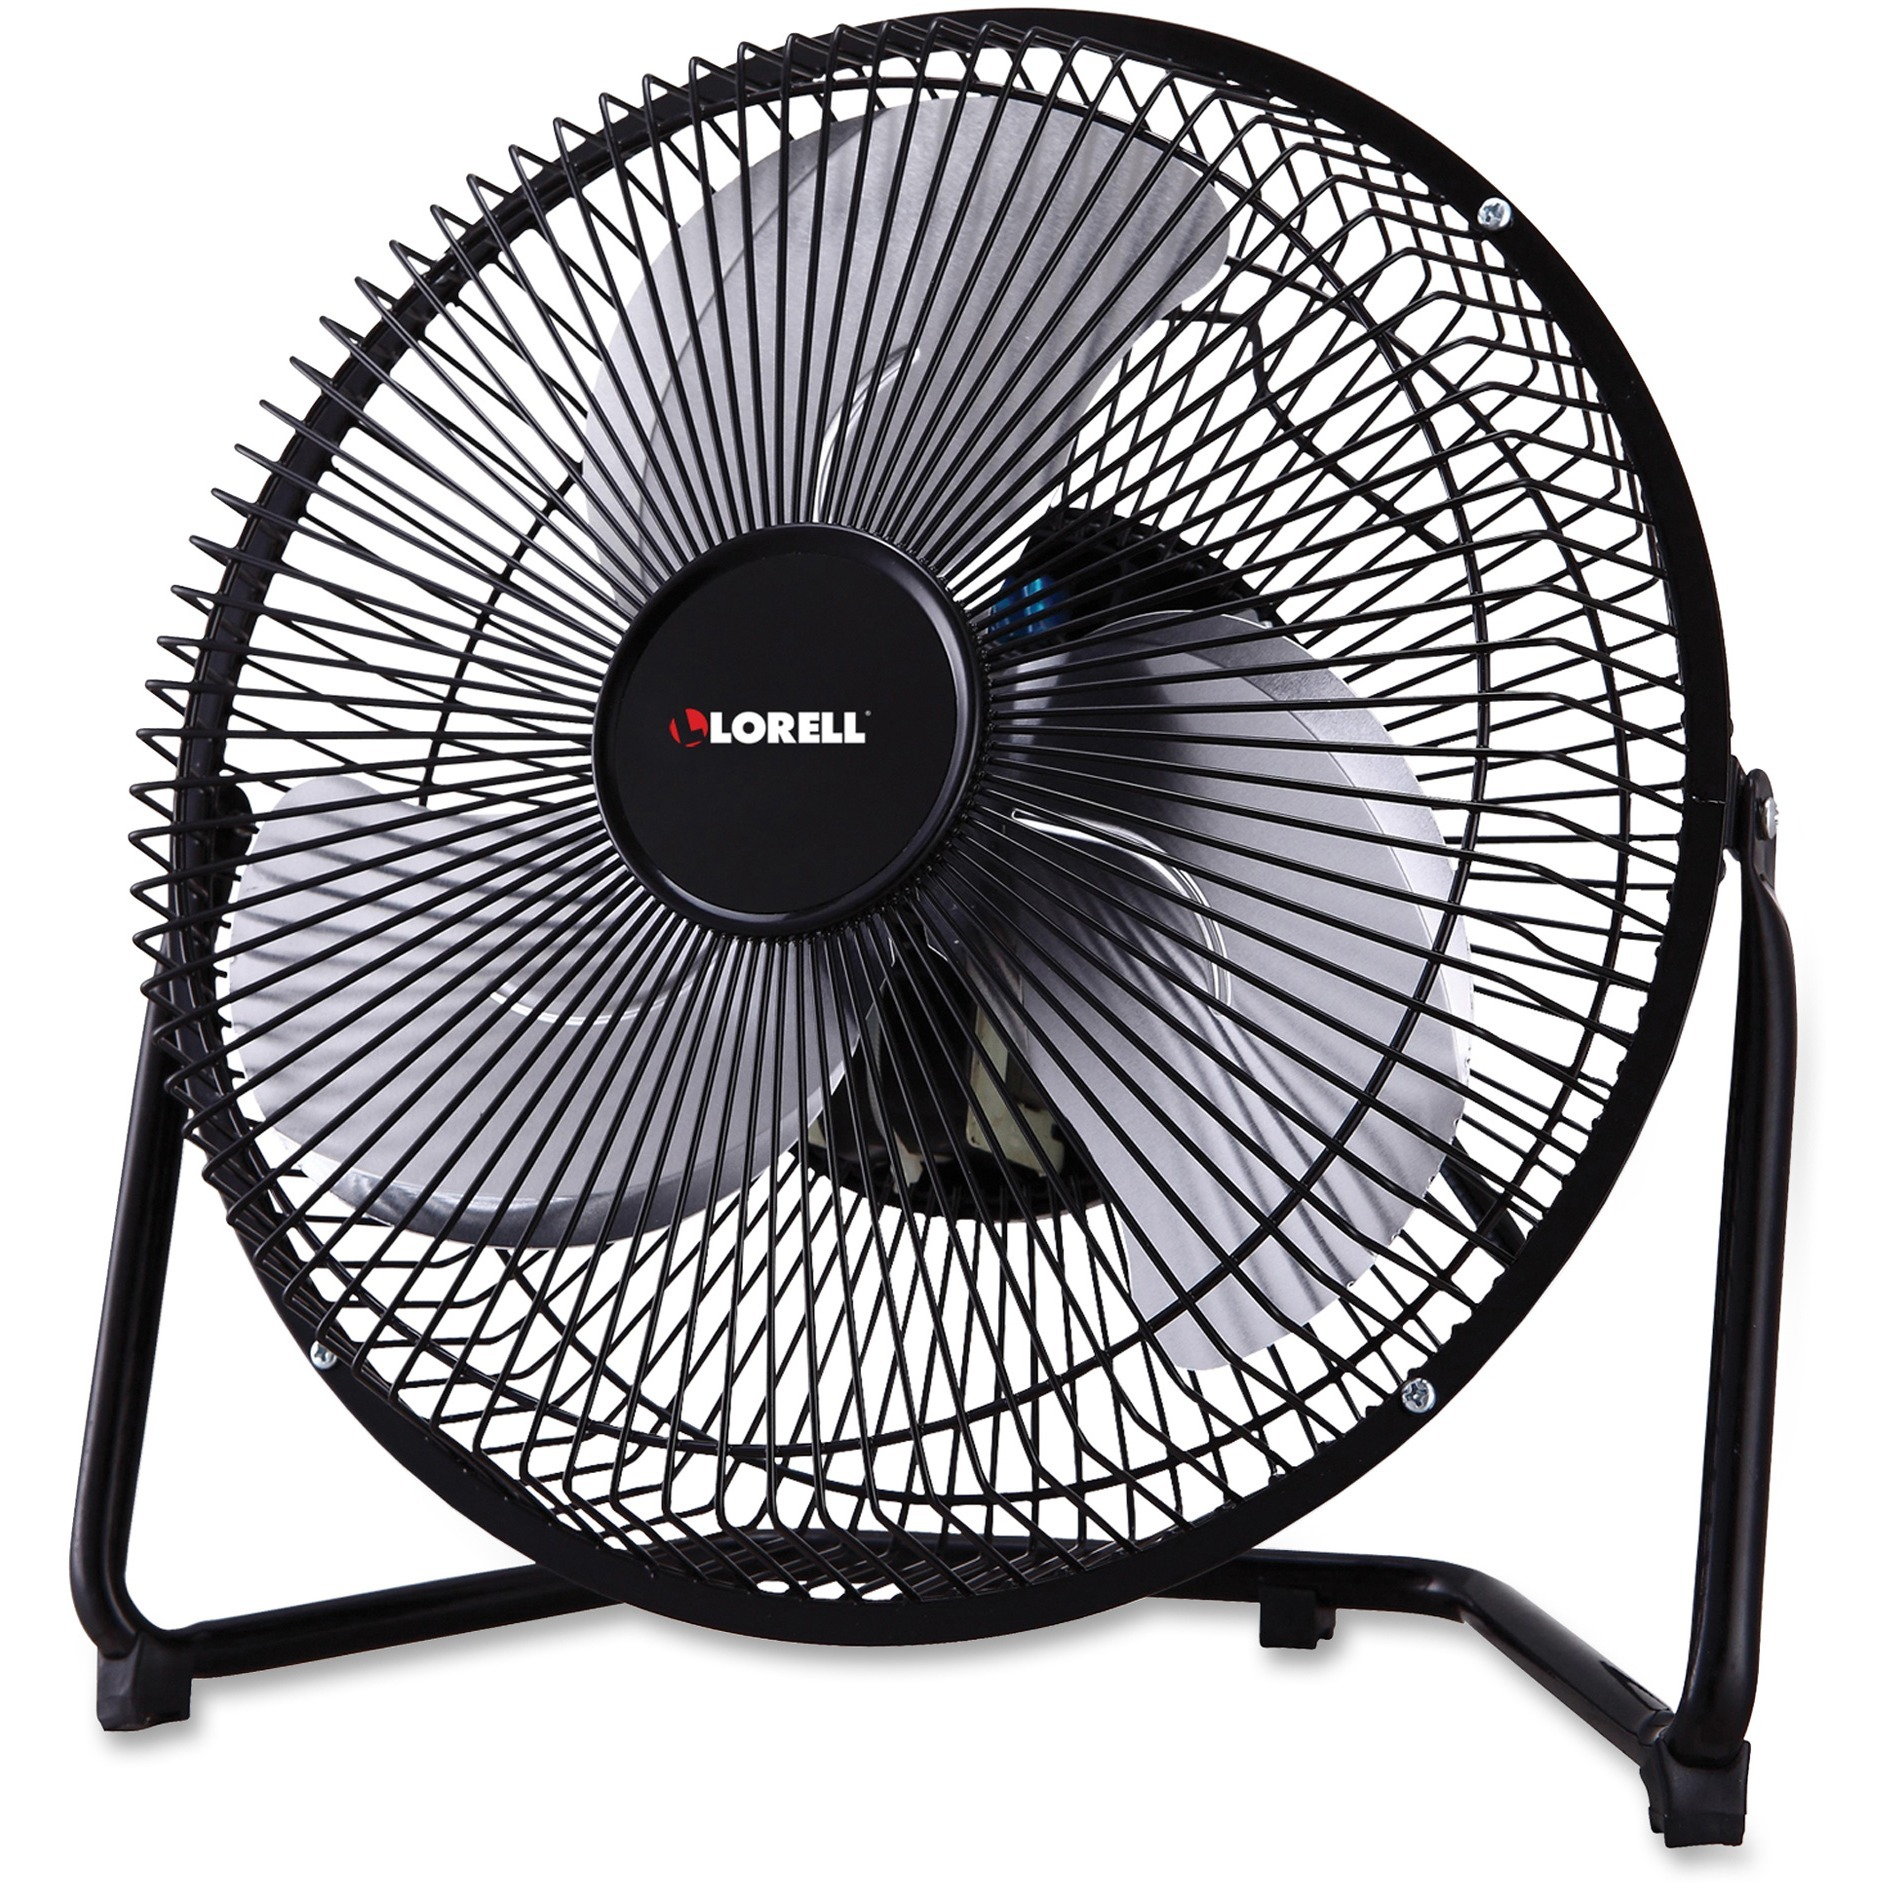 Lorell, LLR33982, 2-Speed Heavy Metal Fan, 1 Each, Black